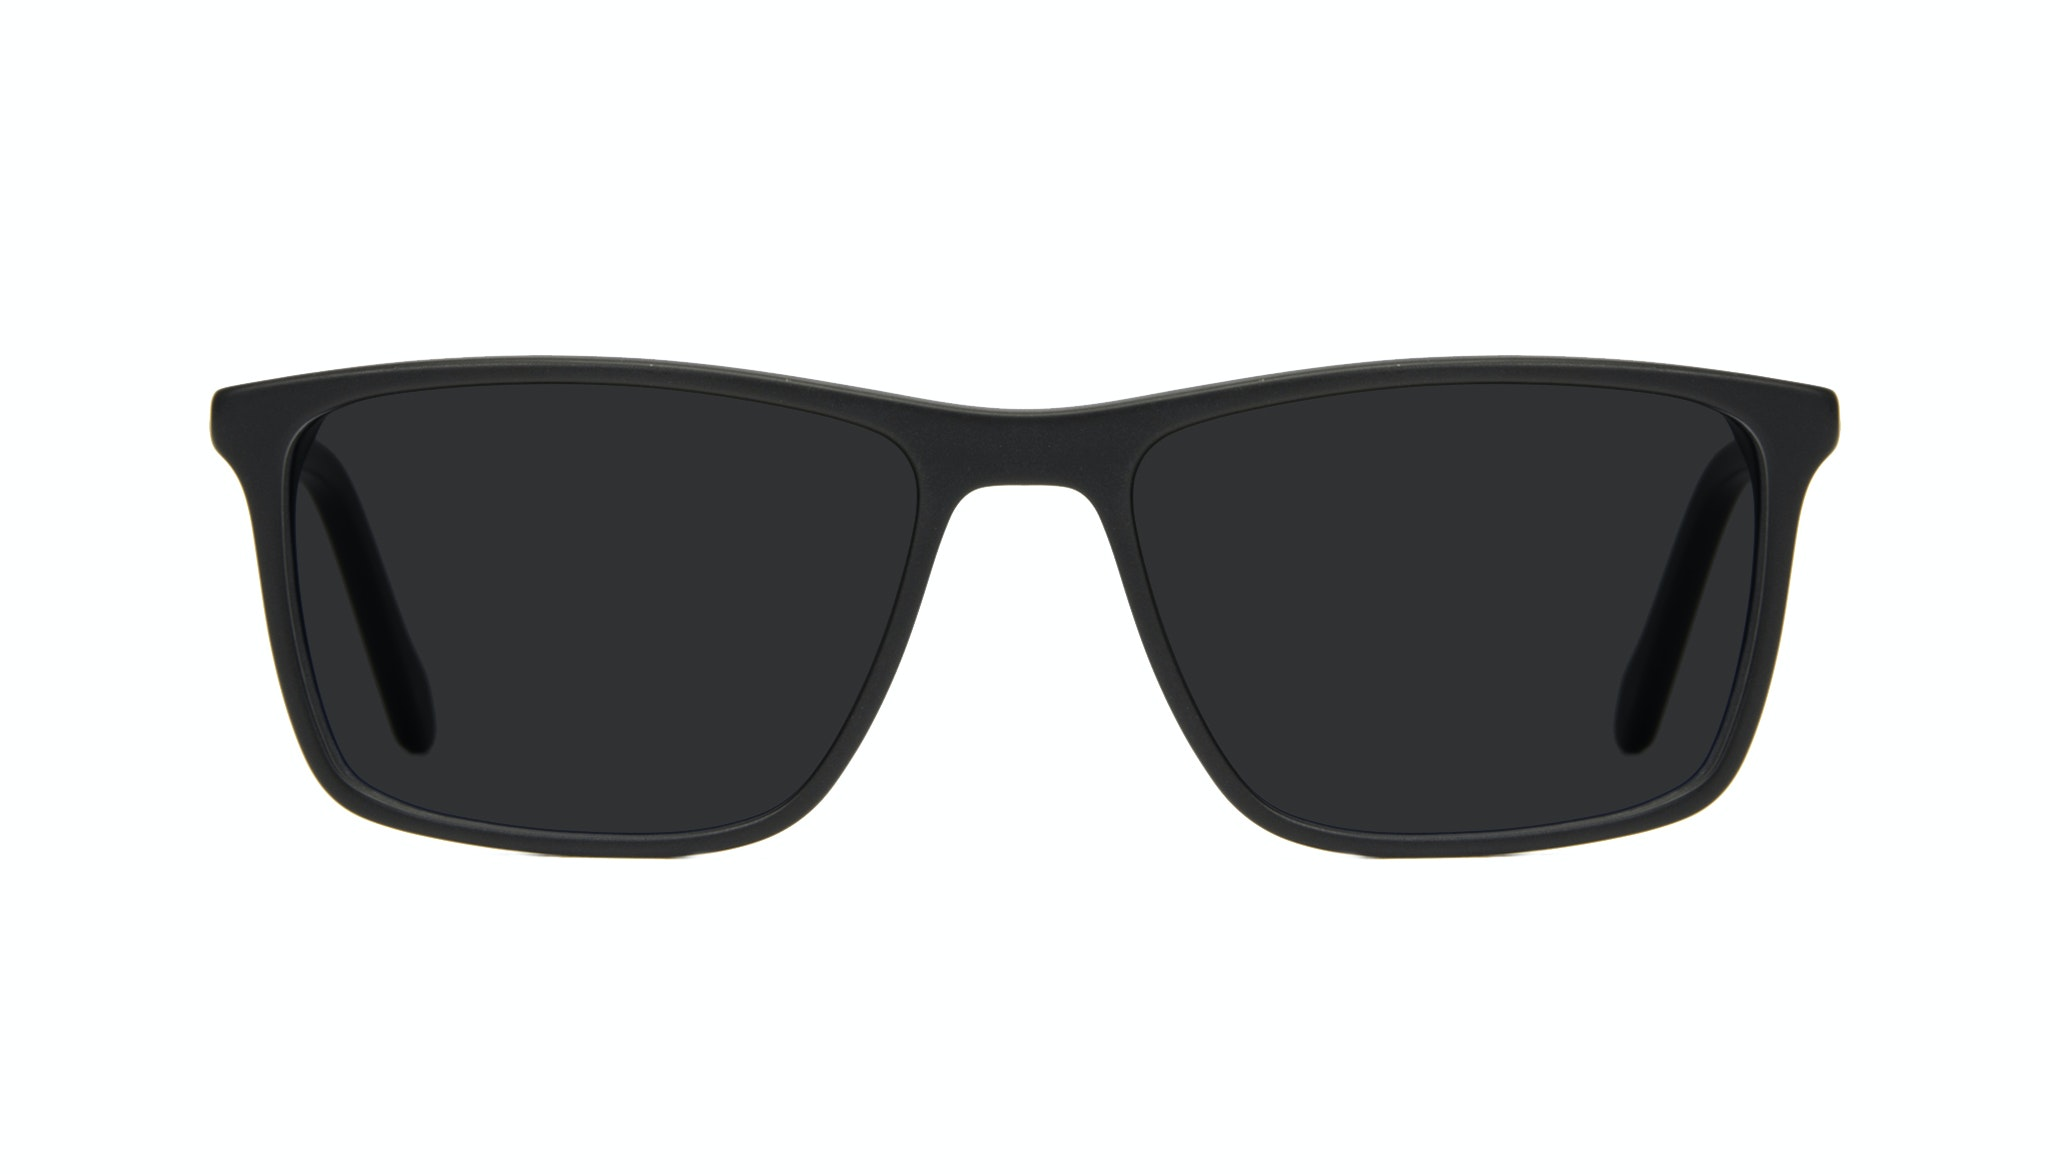 Affordable Fashion Glasses Rectangle Sunglasses Men Skill Matt Black